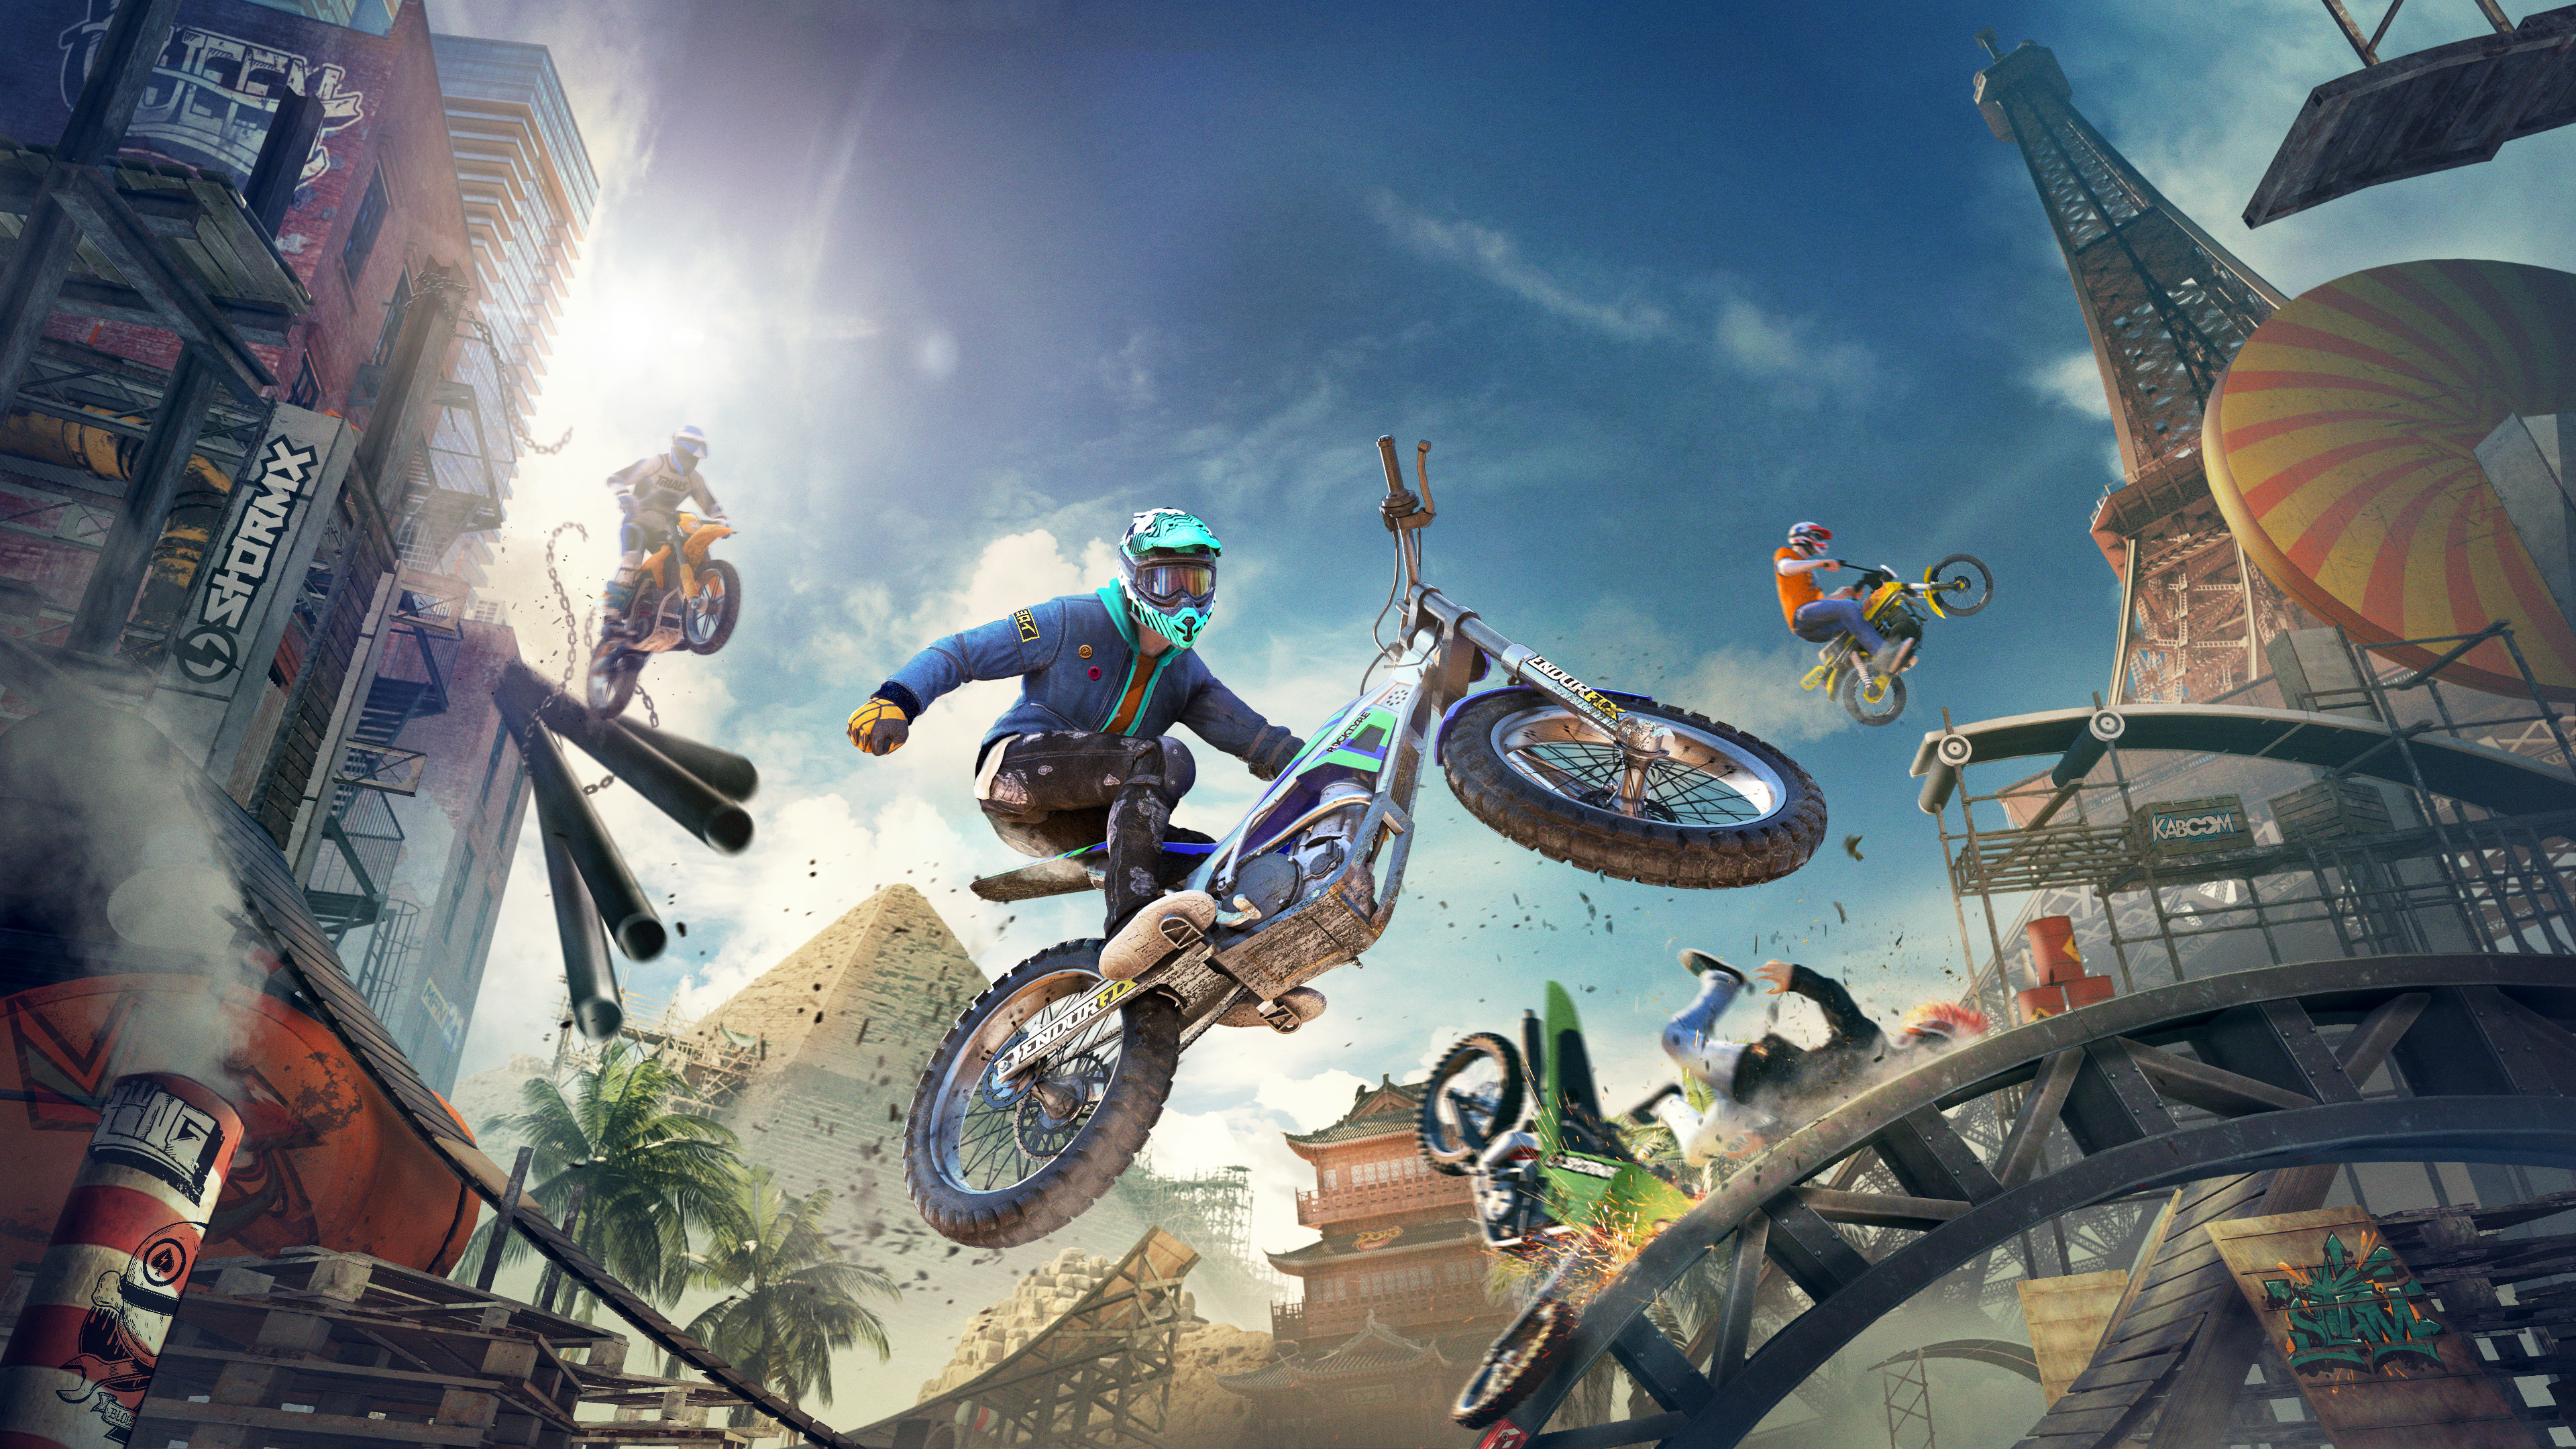 trials-rising-3840x2160-playstation-4-xbox-one-nintendo-switch-pc-16454